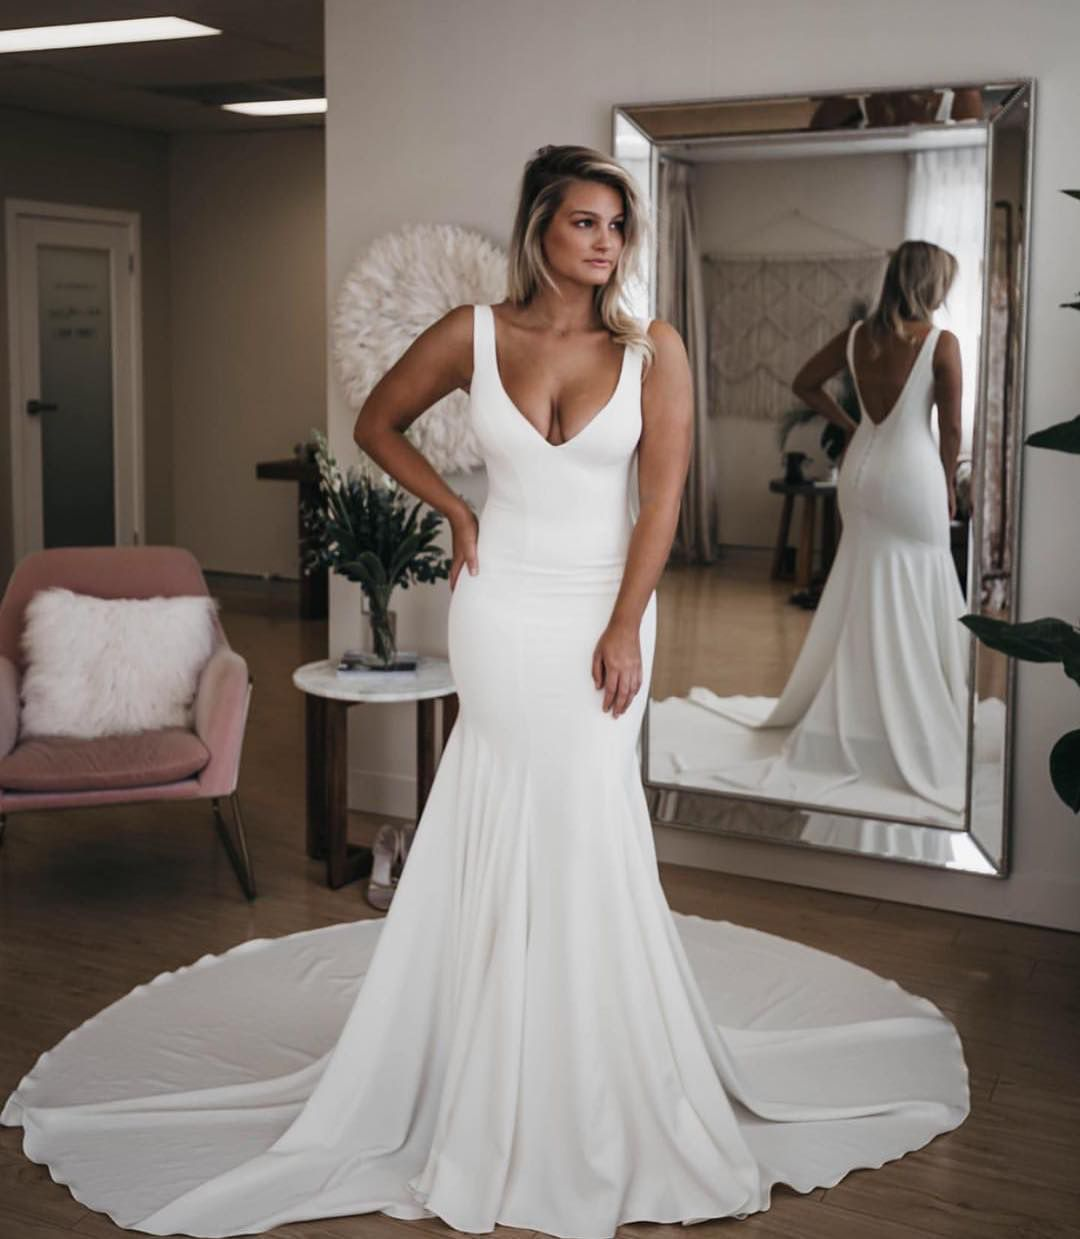 Elegant Ivory V Neck Mermaid Soft Satin Wedding Dress Evening Gown With Long Train From Queenparty Online Wedding Dress Evening Dresses For Weddings Beach Wedding Dresses Backless [ 1239 x 1080 Pixel ]